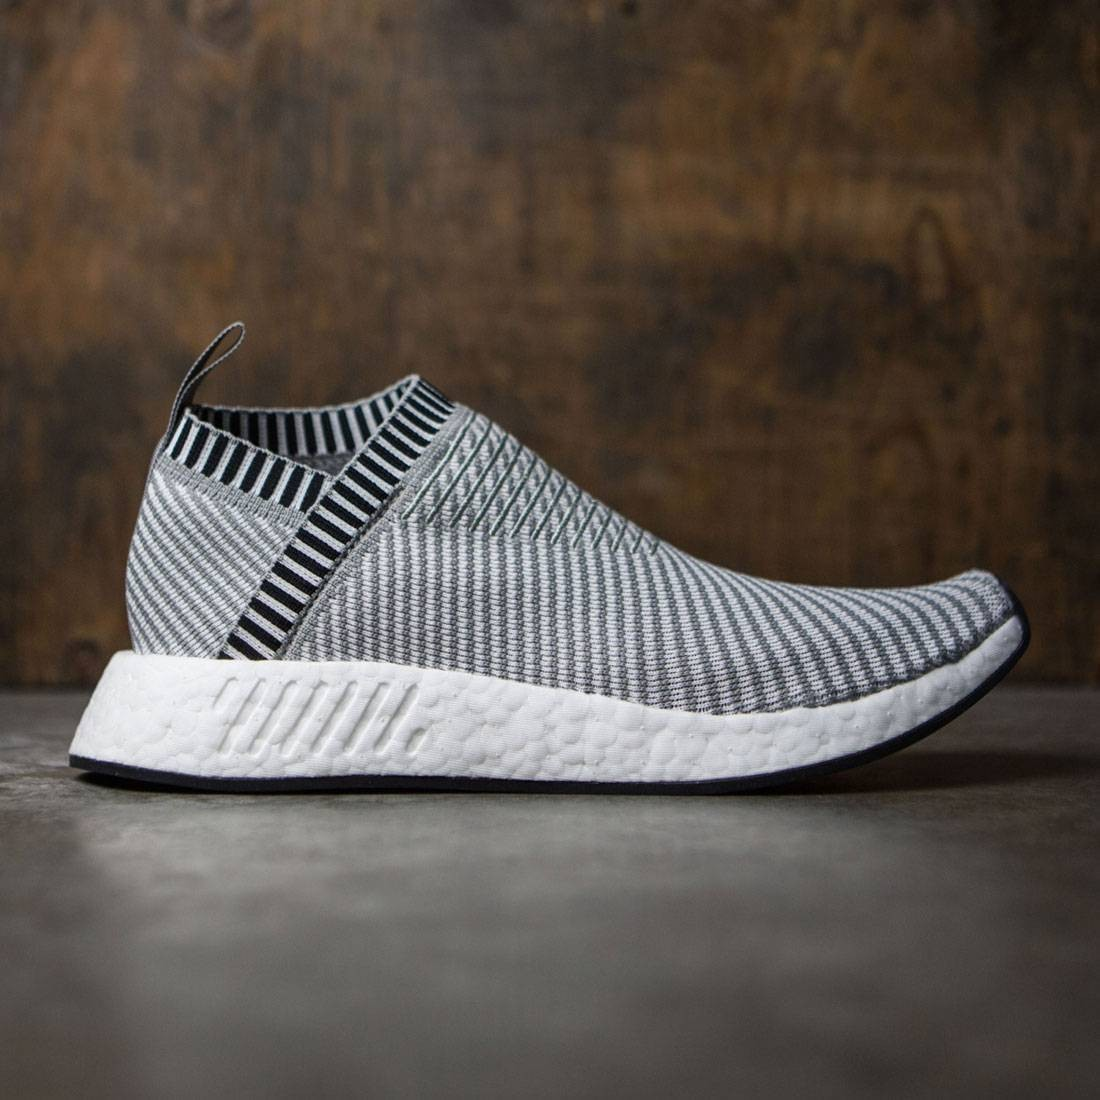 huge discount a816b 8c9a2 Adidas Men NMD CS2 Primeknit gray sold grey footwear white shock pink